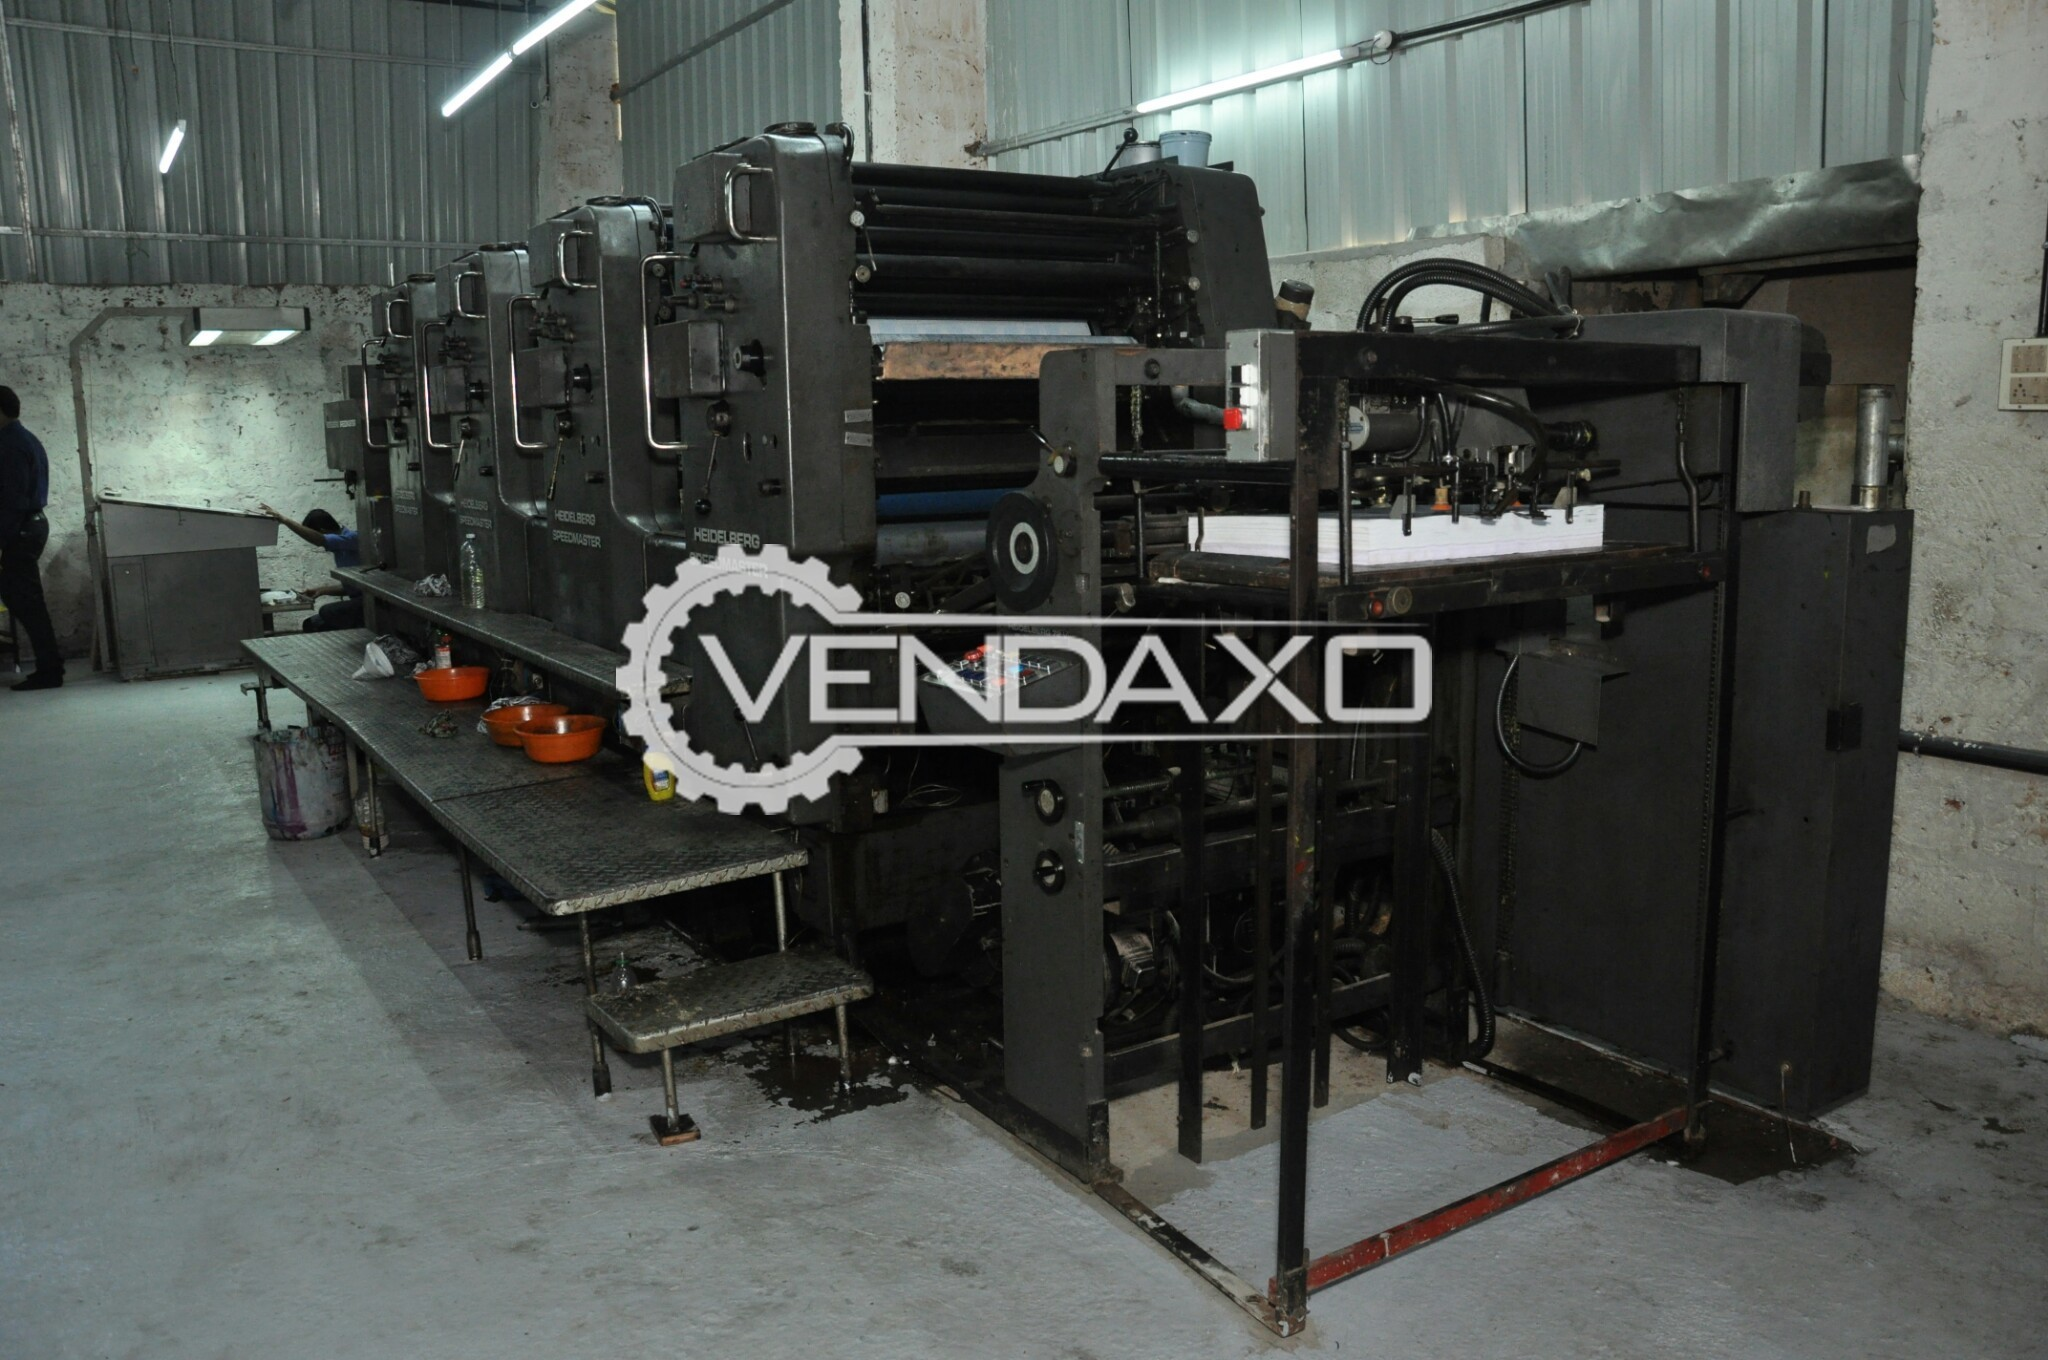 Hiedelberg Speedmaster Printing Machine - 4 Color